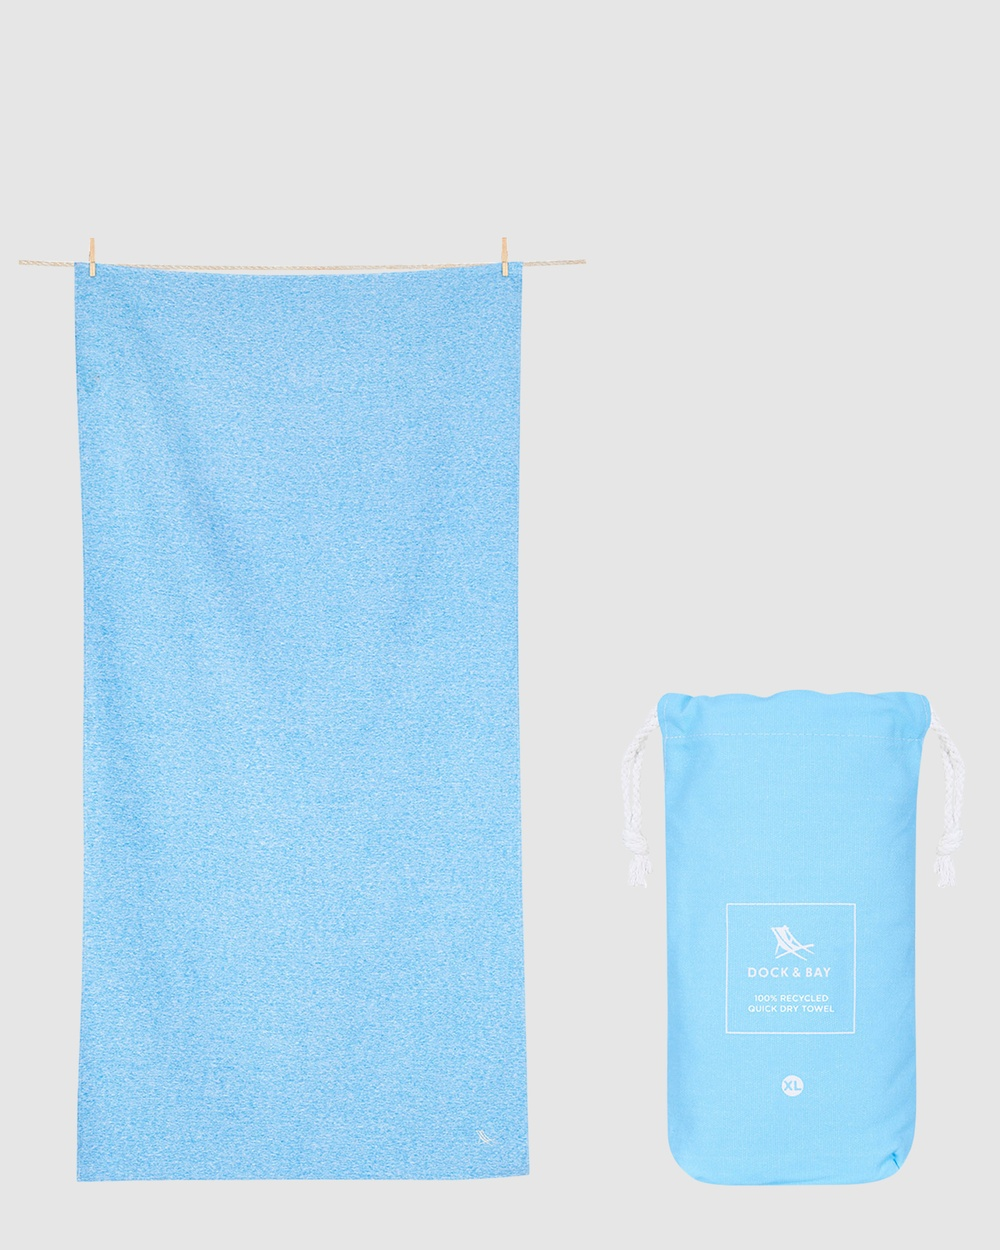 Dock & Bay Extra Large Fitness Towel 100% Recycled Essential Collection Gym Yoga Blue